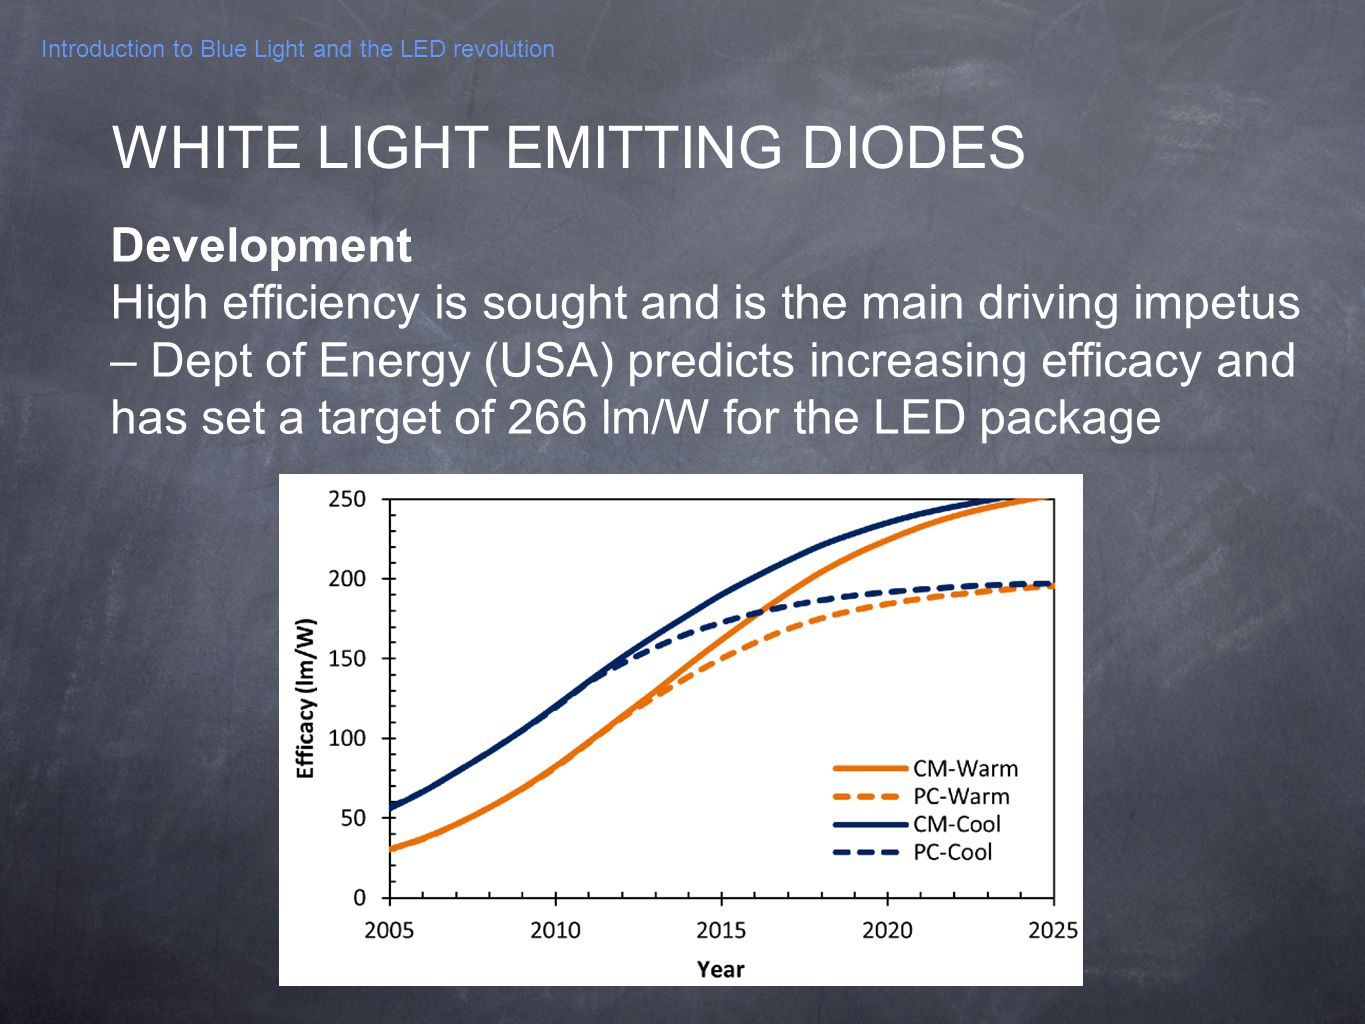 Introduction to Blue Light and the LED revolution Development High efficiency is sought and is the main driving impetus – Dept of Energy (USA) predict